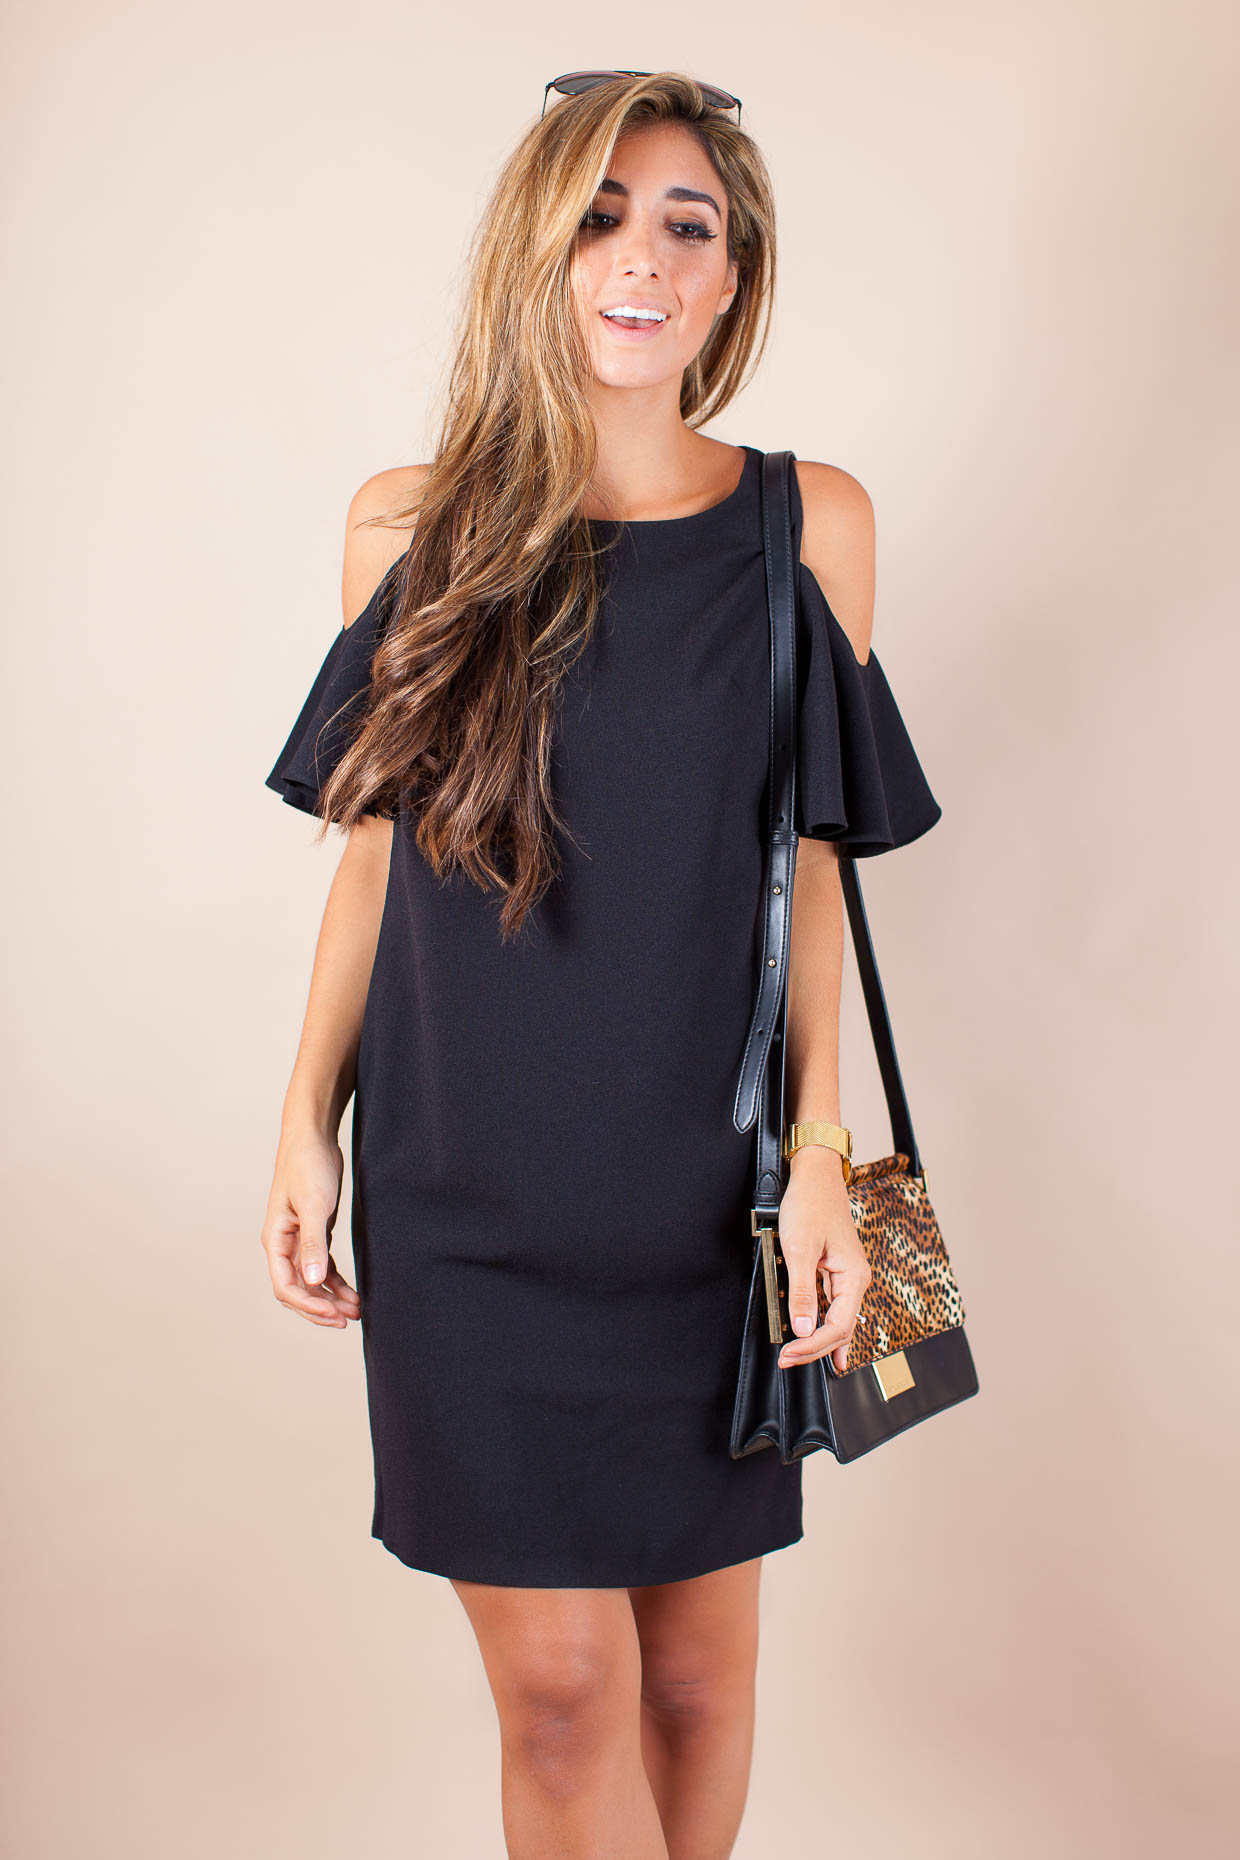 Audrey Dress by Parker for $128 | Rent the Runway